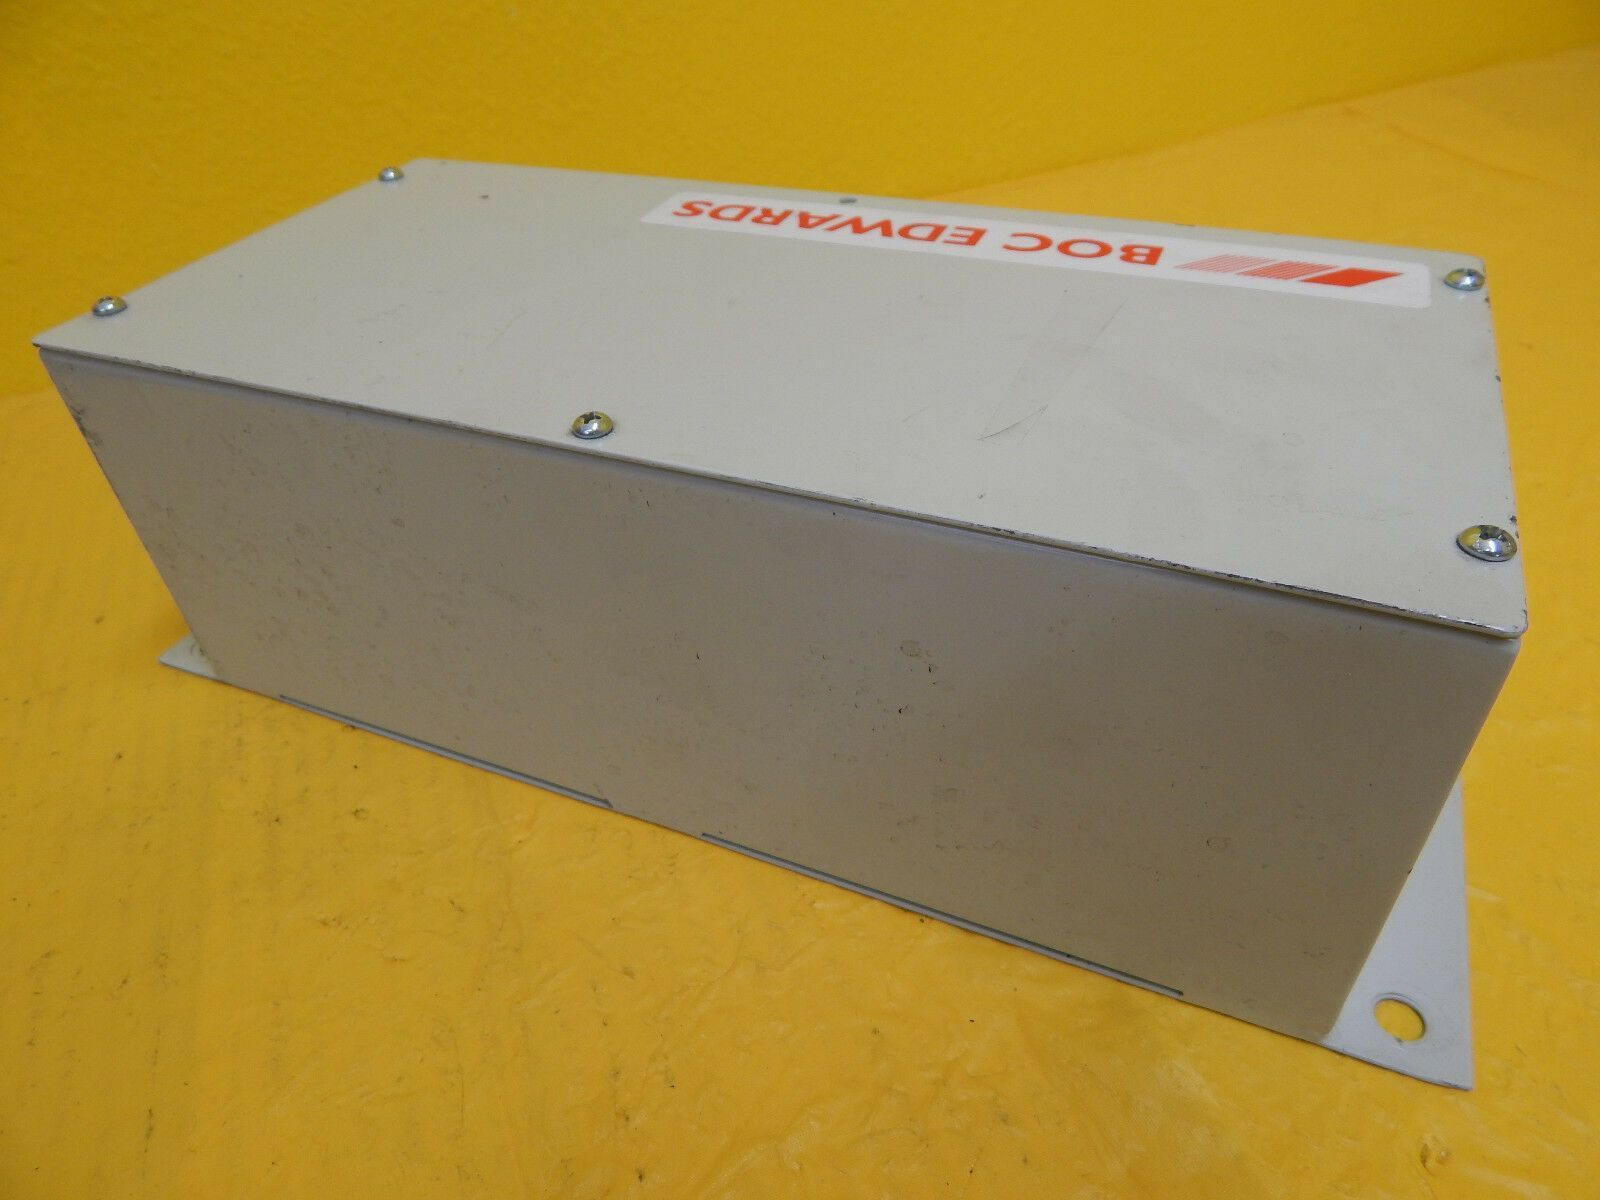 Edwards NRY0DN101US Eason Control Box Module Alarm Enclosure Rev. G Used Working